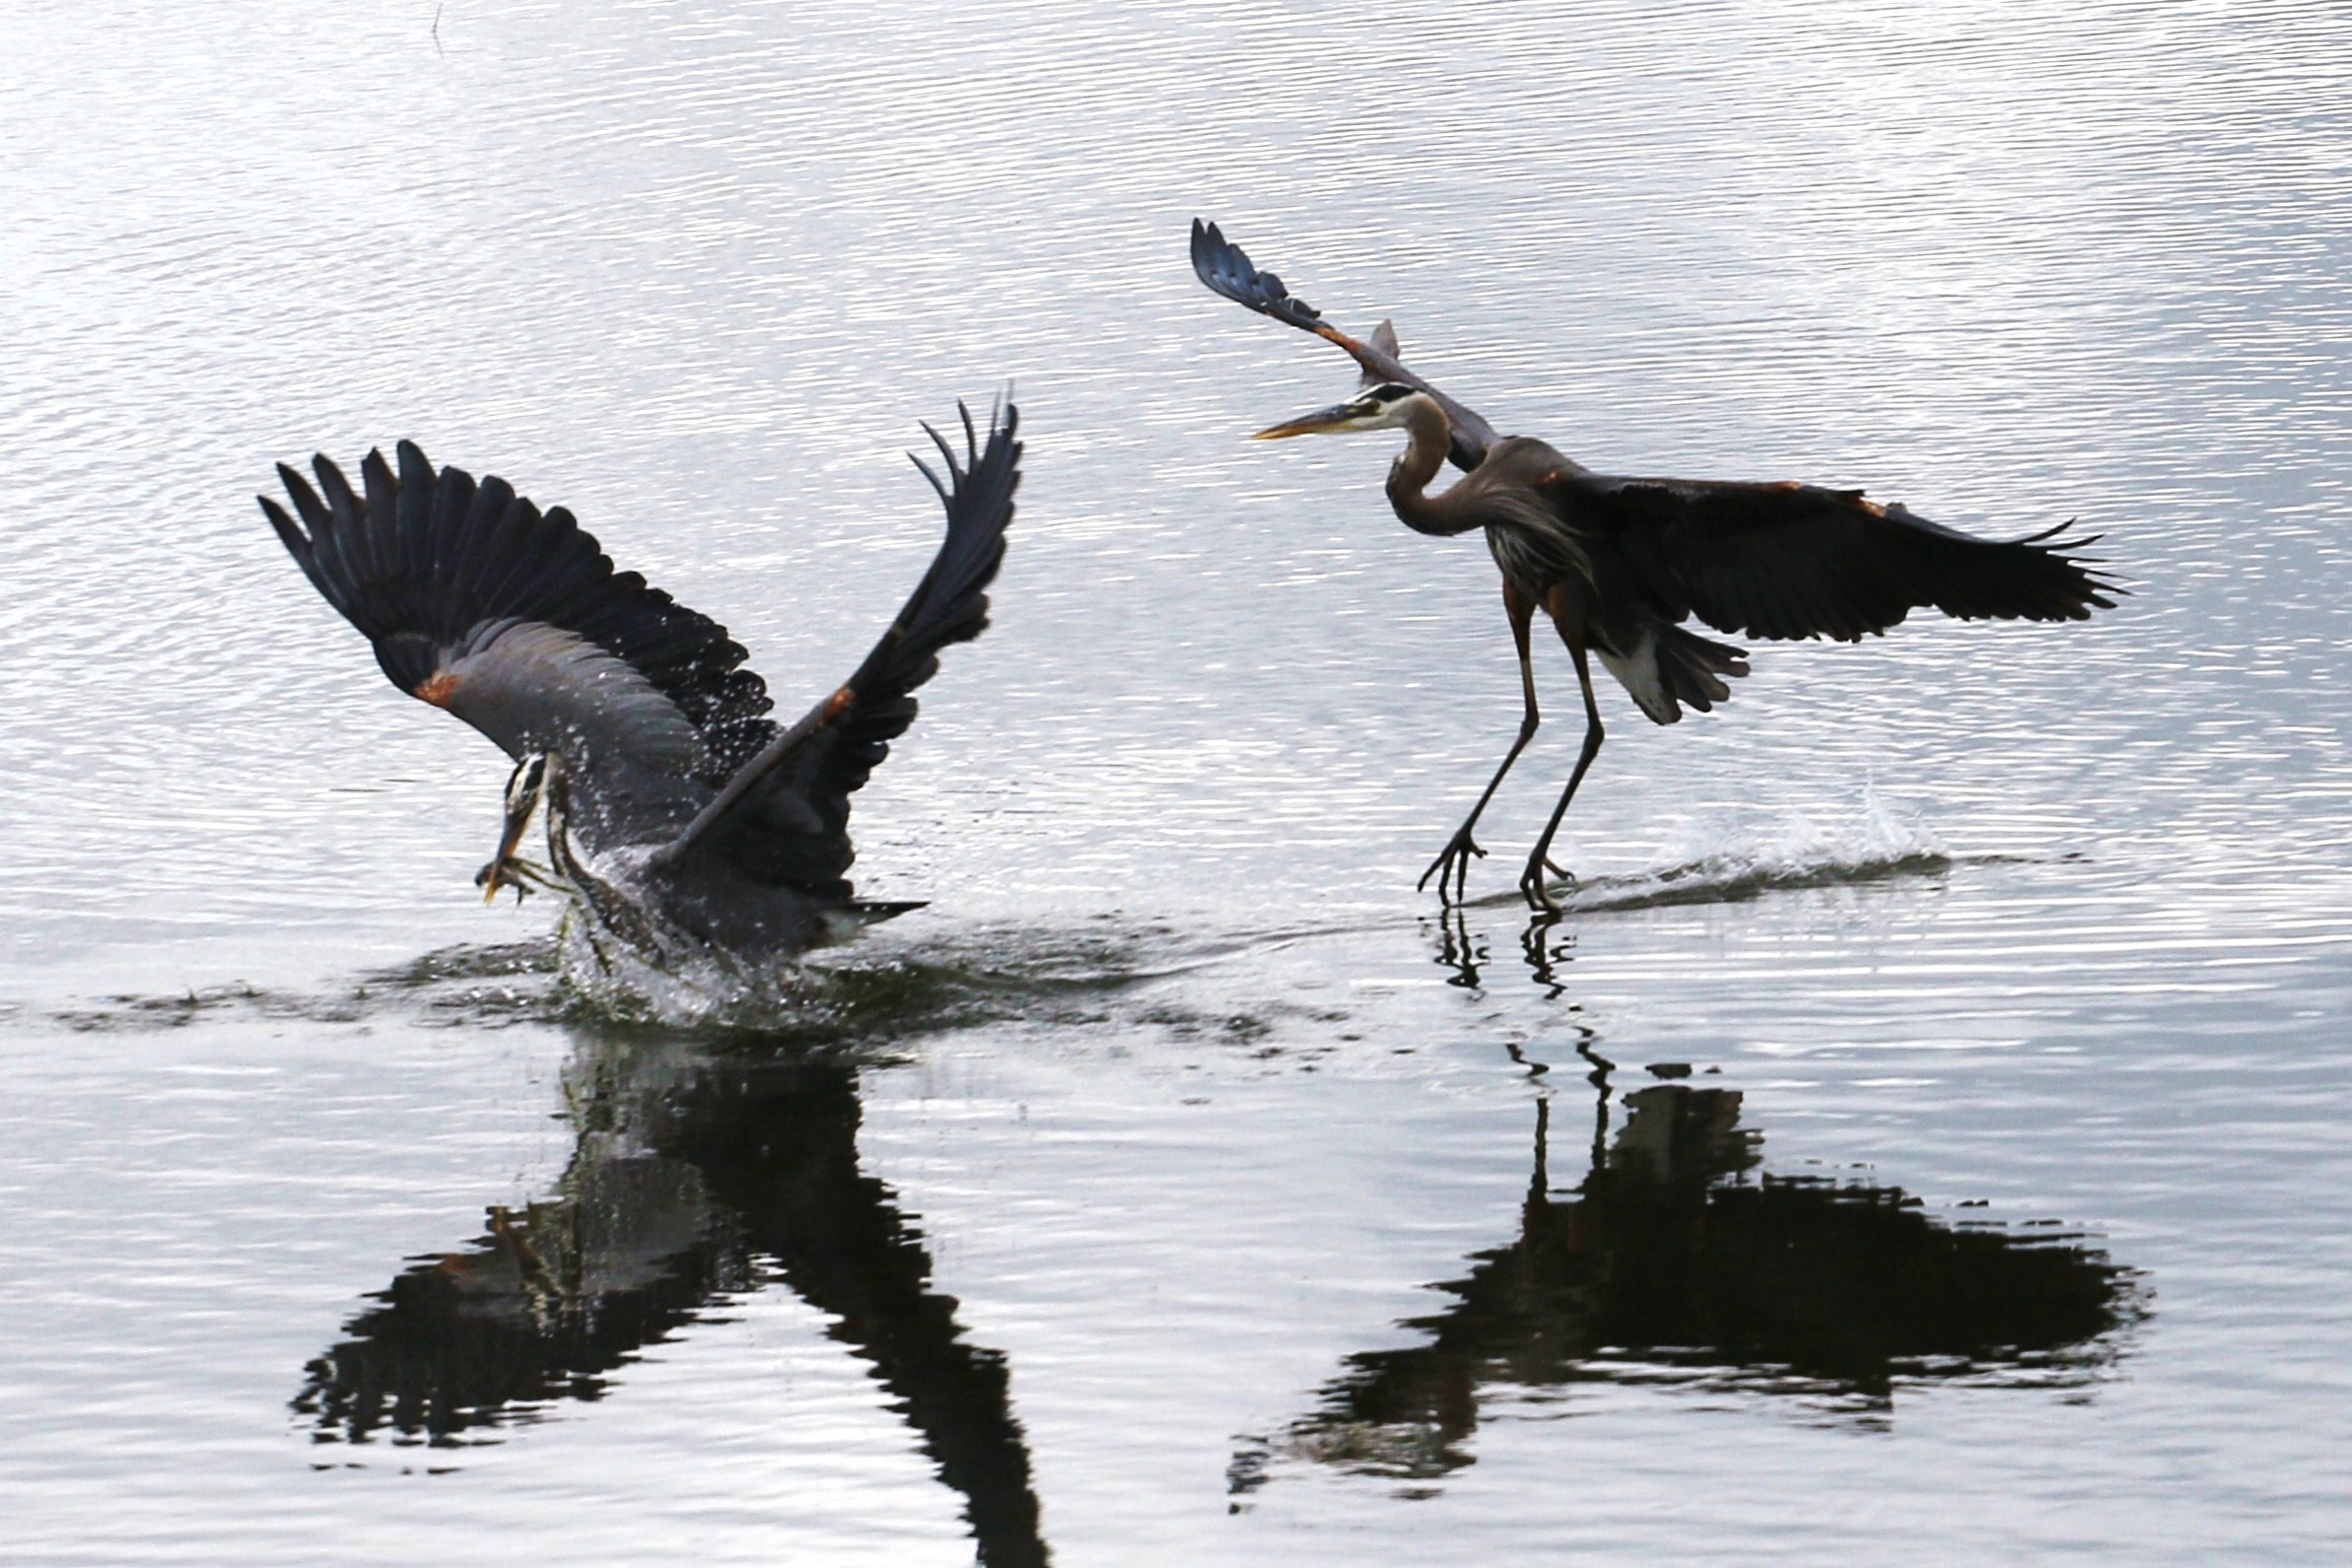 2 herons fishing by Cal Grimmer